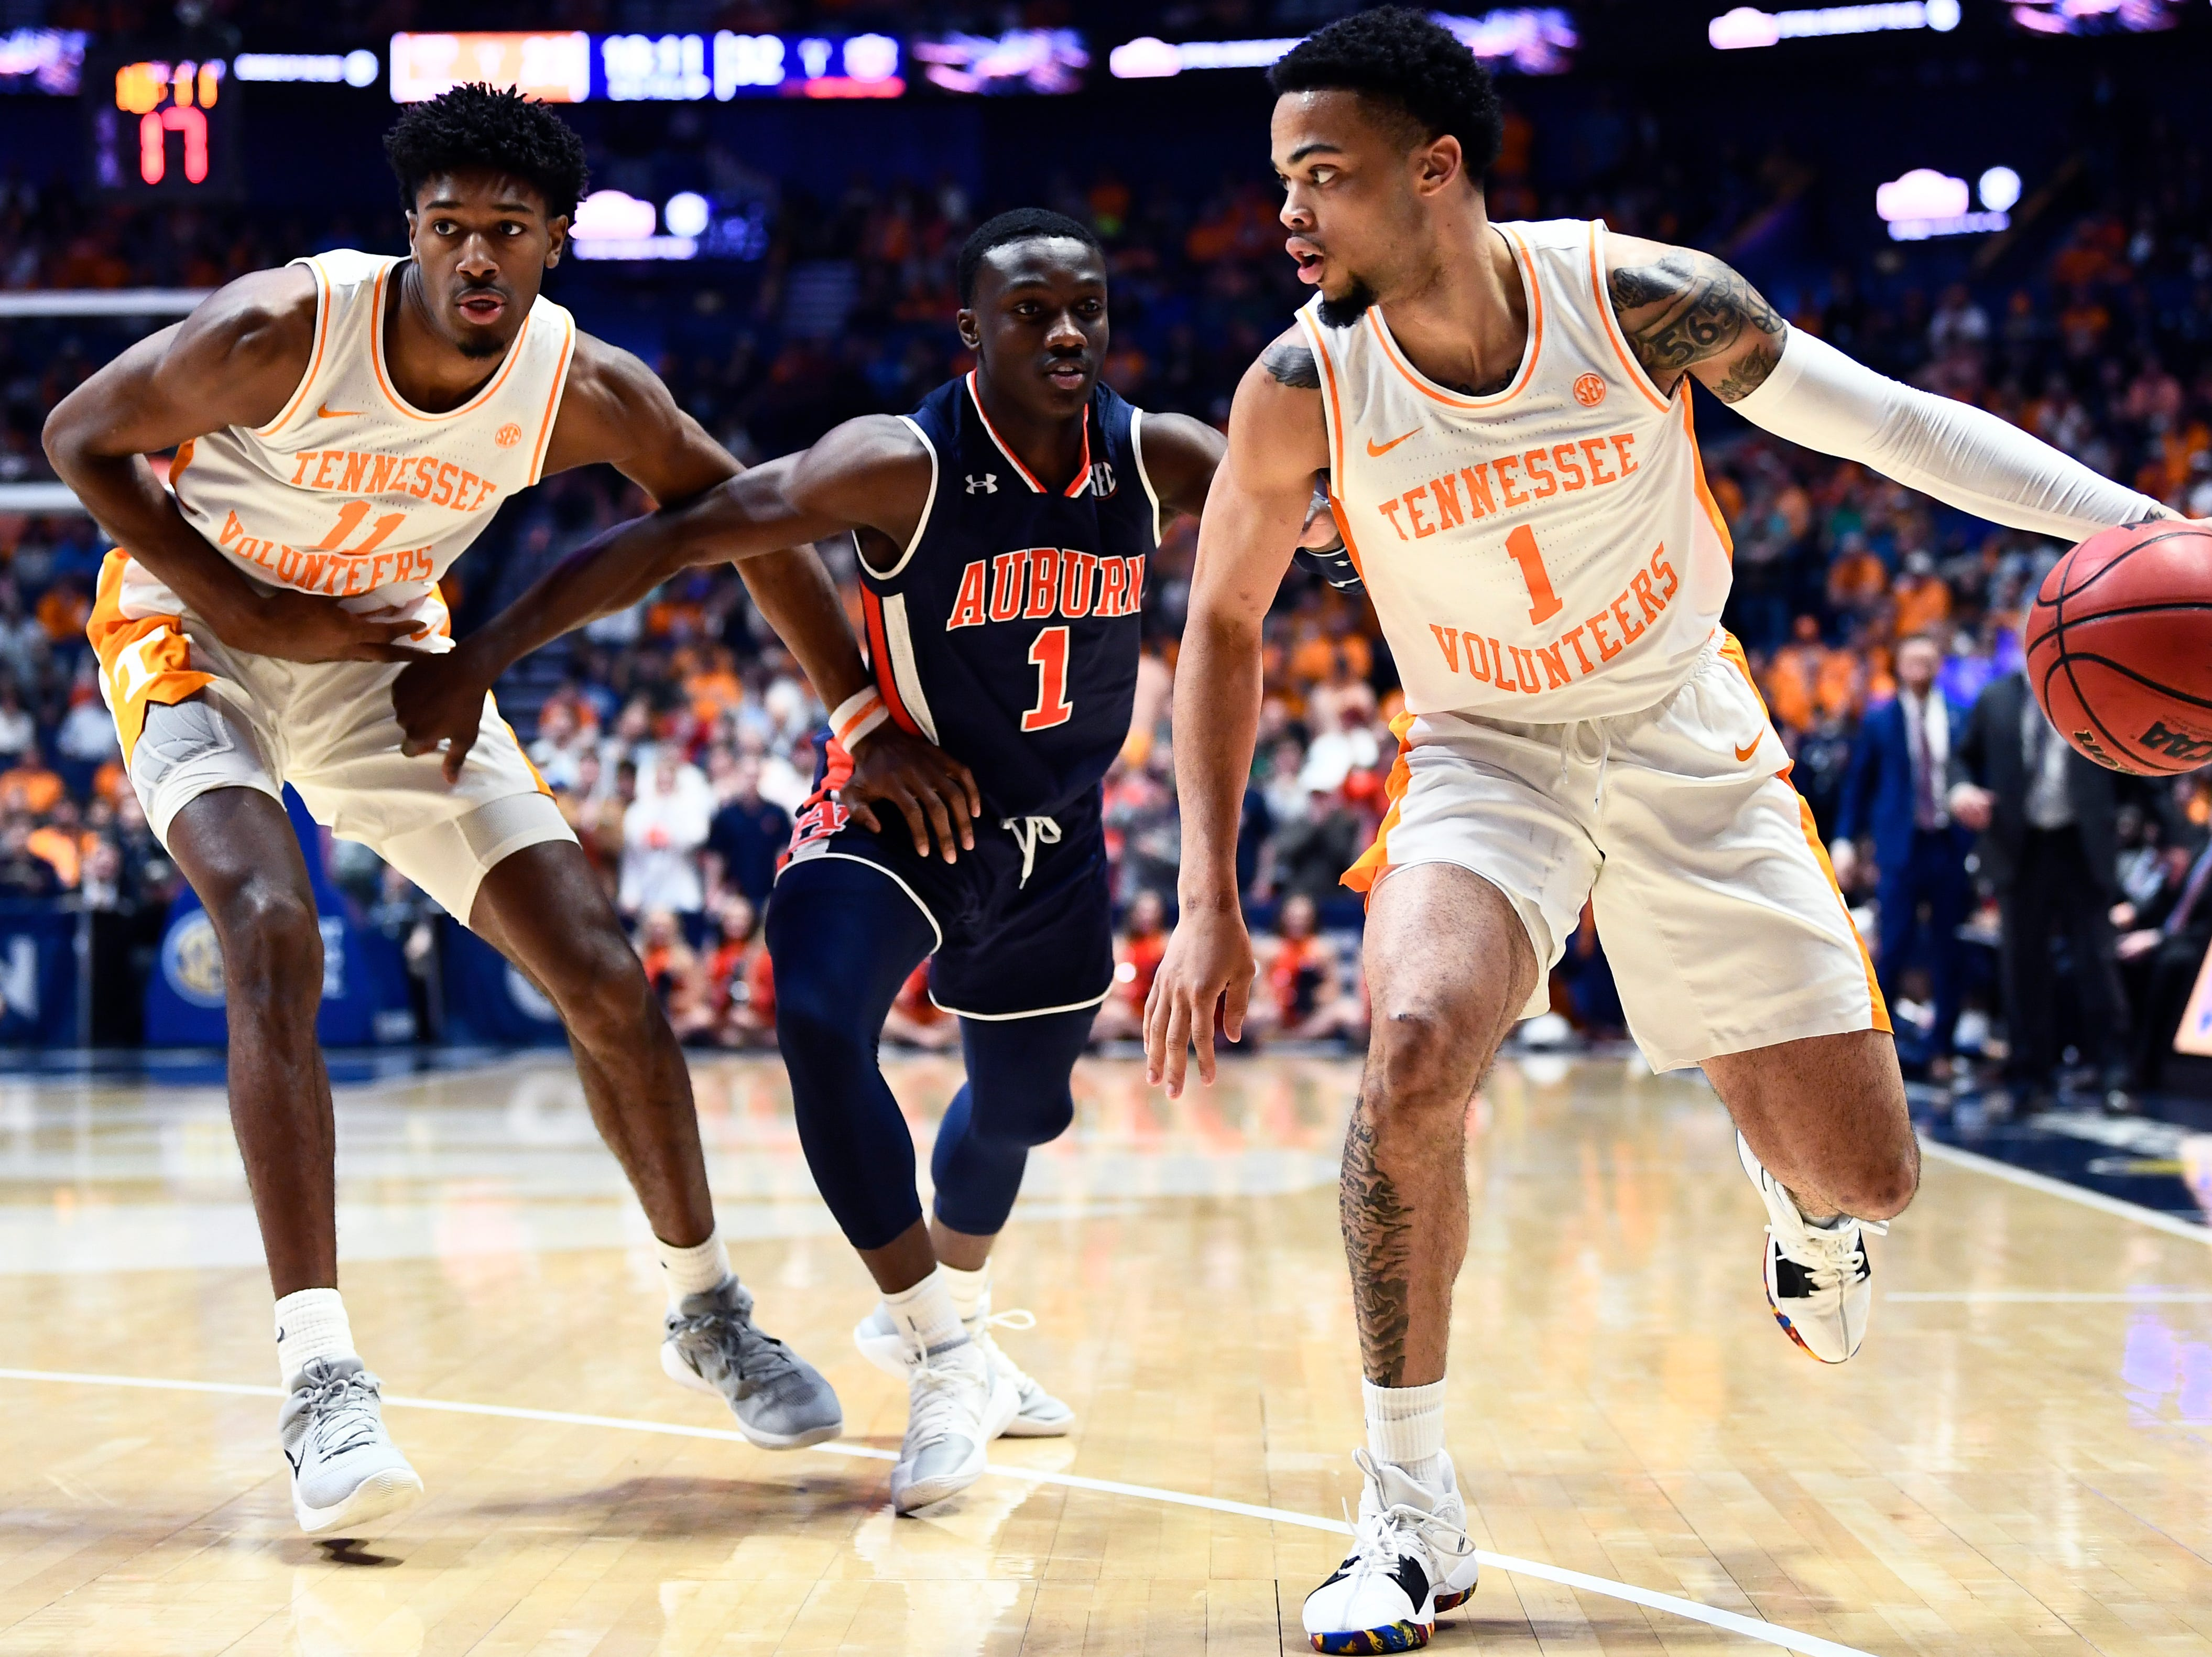 Tennessee guard Lamonte Turner (1) dribbles down the court during the second half of the SEC Men's Basketball Tournament championship game at Bridgestone Arena in Nashville, Tenn., Sunday, March 17, 2019.